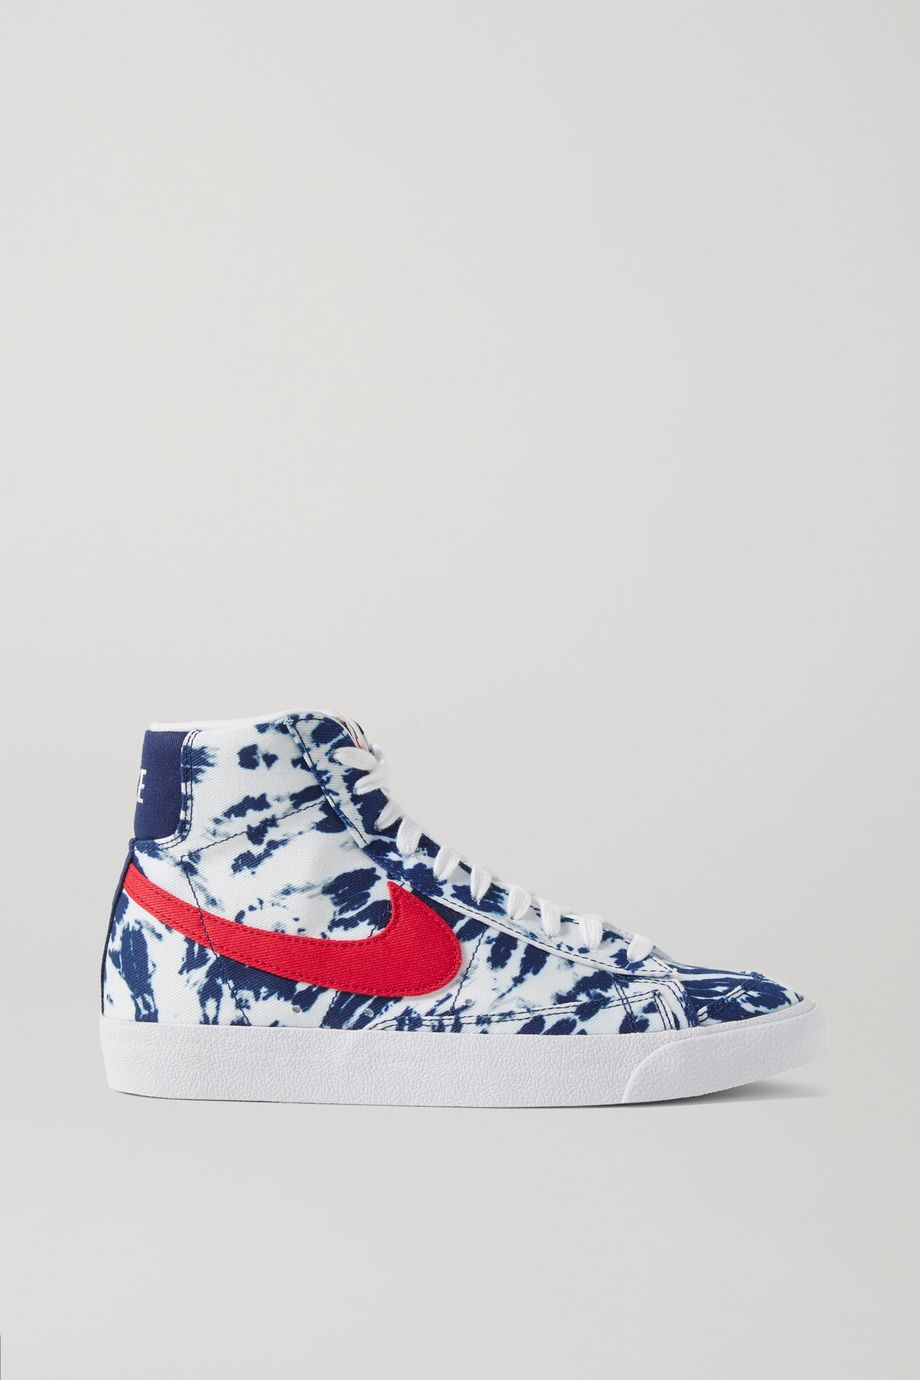 Nike Blazer Mid '77 tie-dyed canvas sneakers